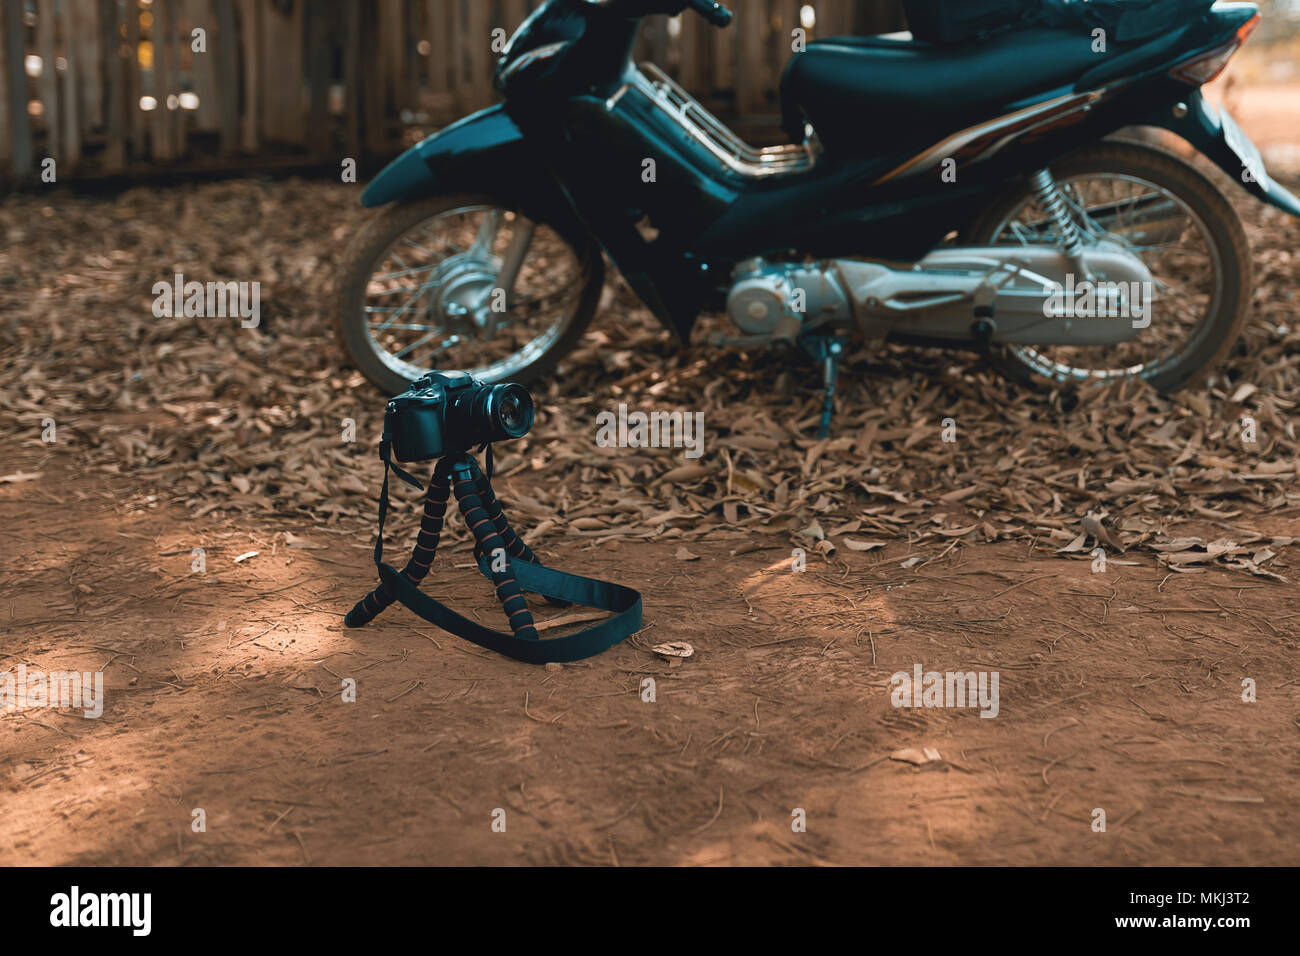 Dslr Camera Standing On Tripod At The Ground With Motorbike In The